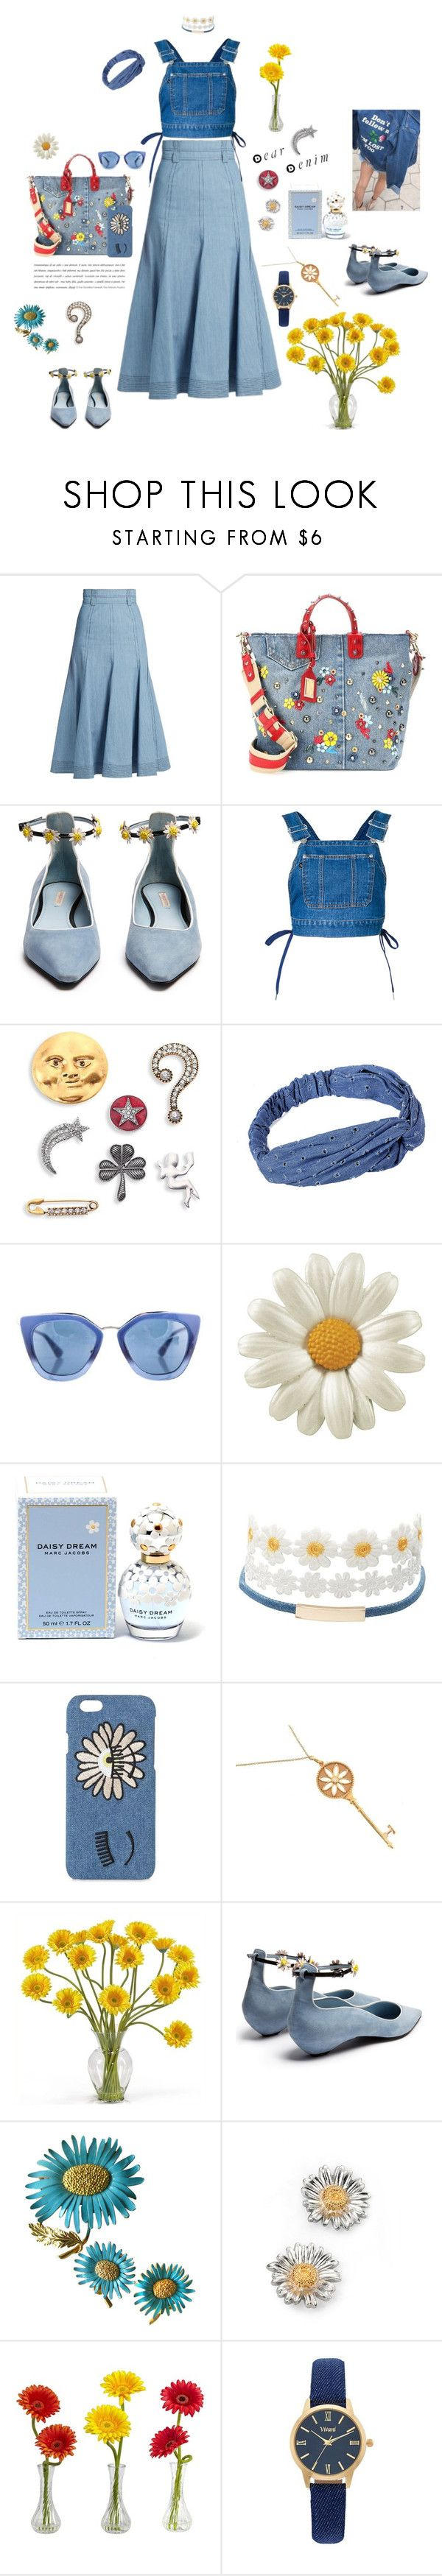 """""""Total denim for today"""" by mbarbosa ❤ liked on Polyvore featuring Gabriela Hearst, Dolce&Gabbana, Fabrizio Viti, G.V.G.V., Marc Jacobs, Prada, Charlotte Russe, Chiara Ferragni, Tiffany & Co. and Nearly Natural"""